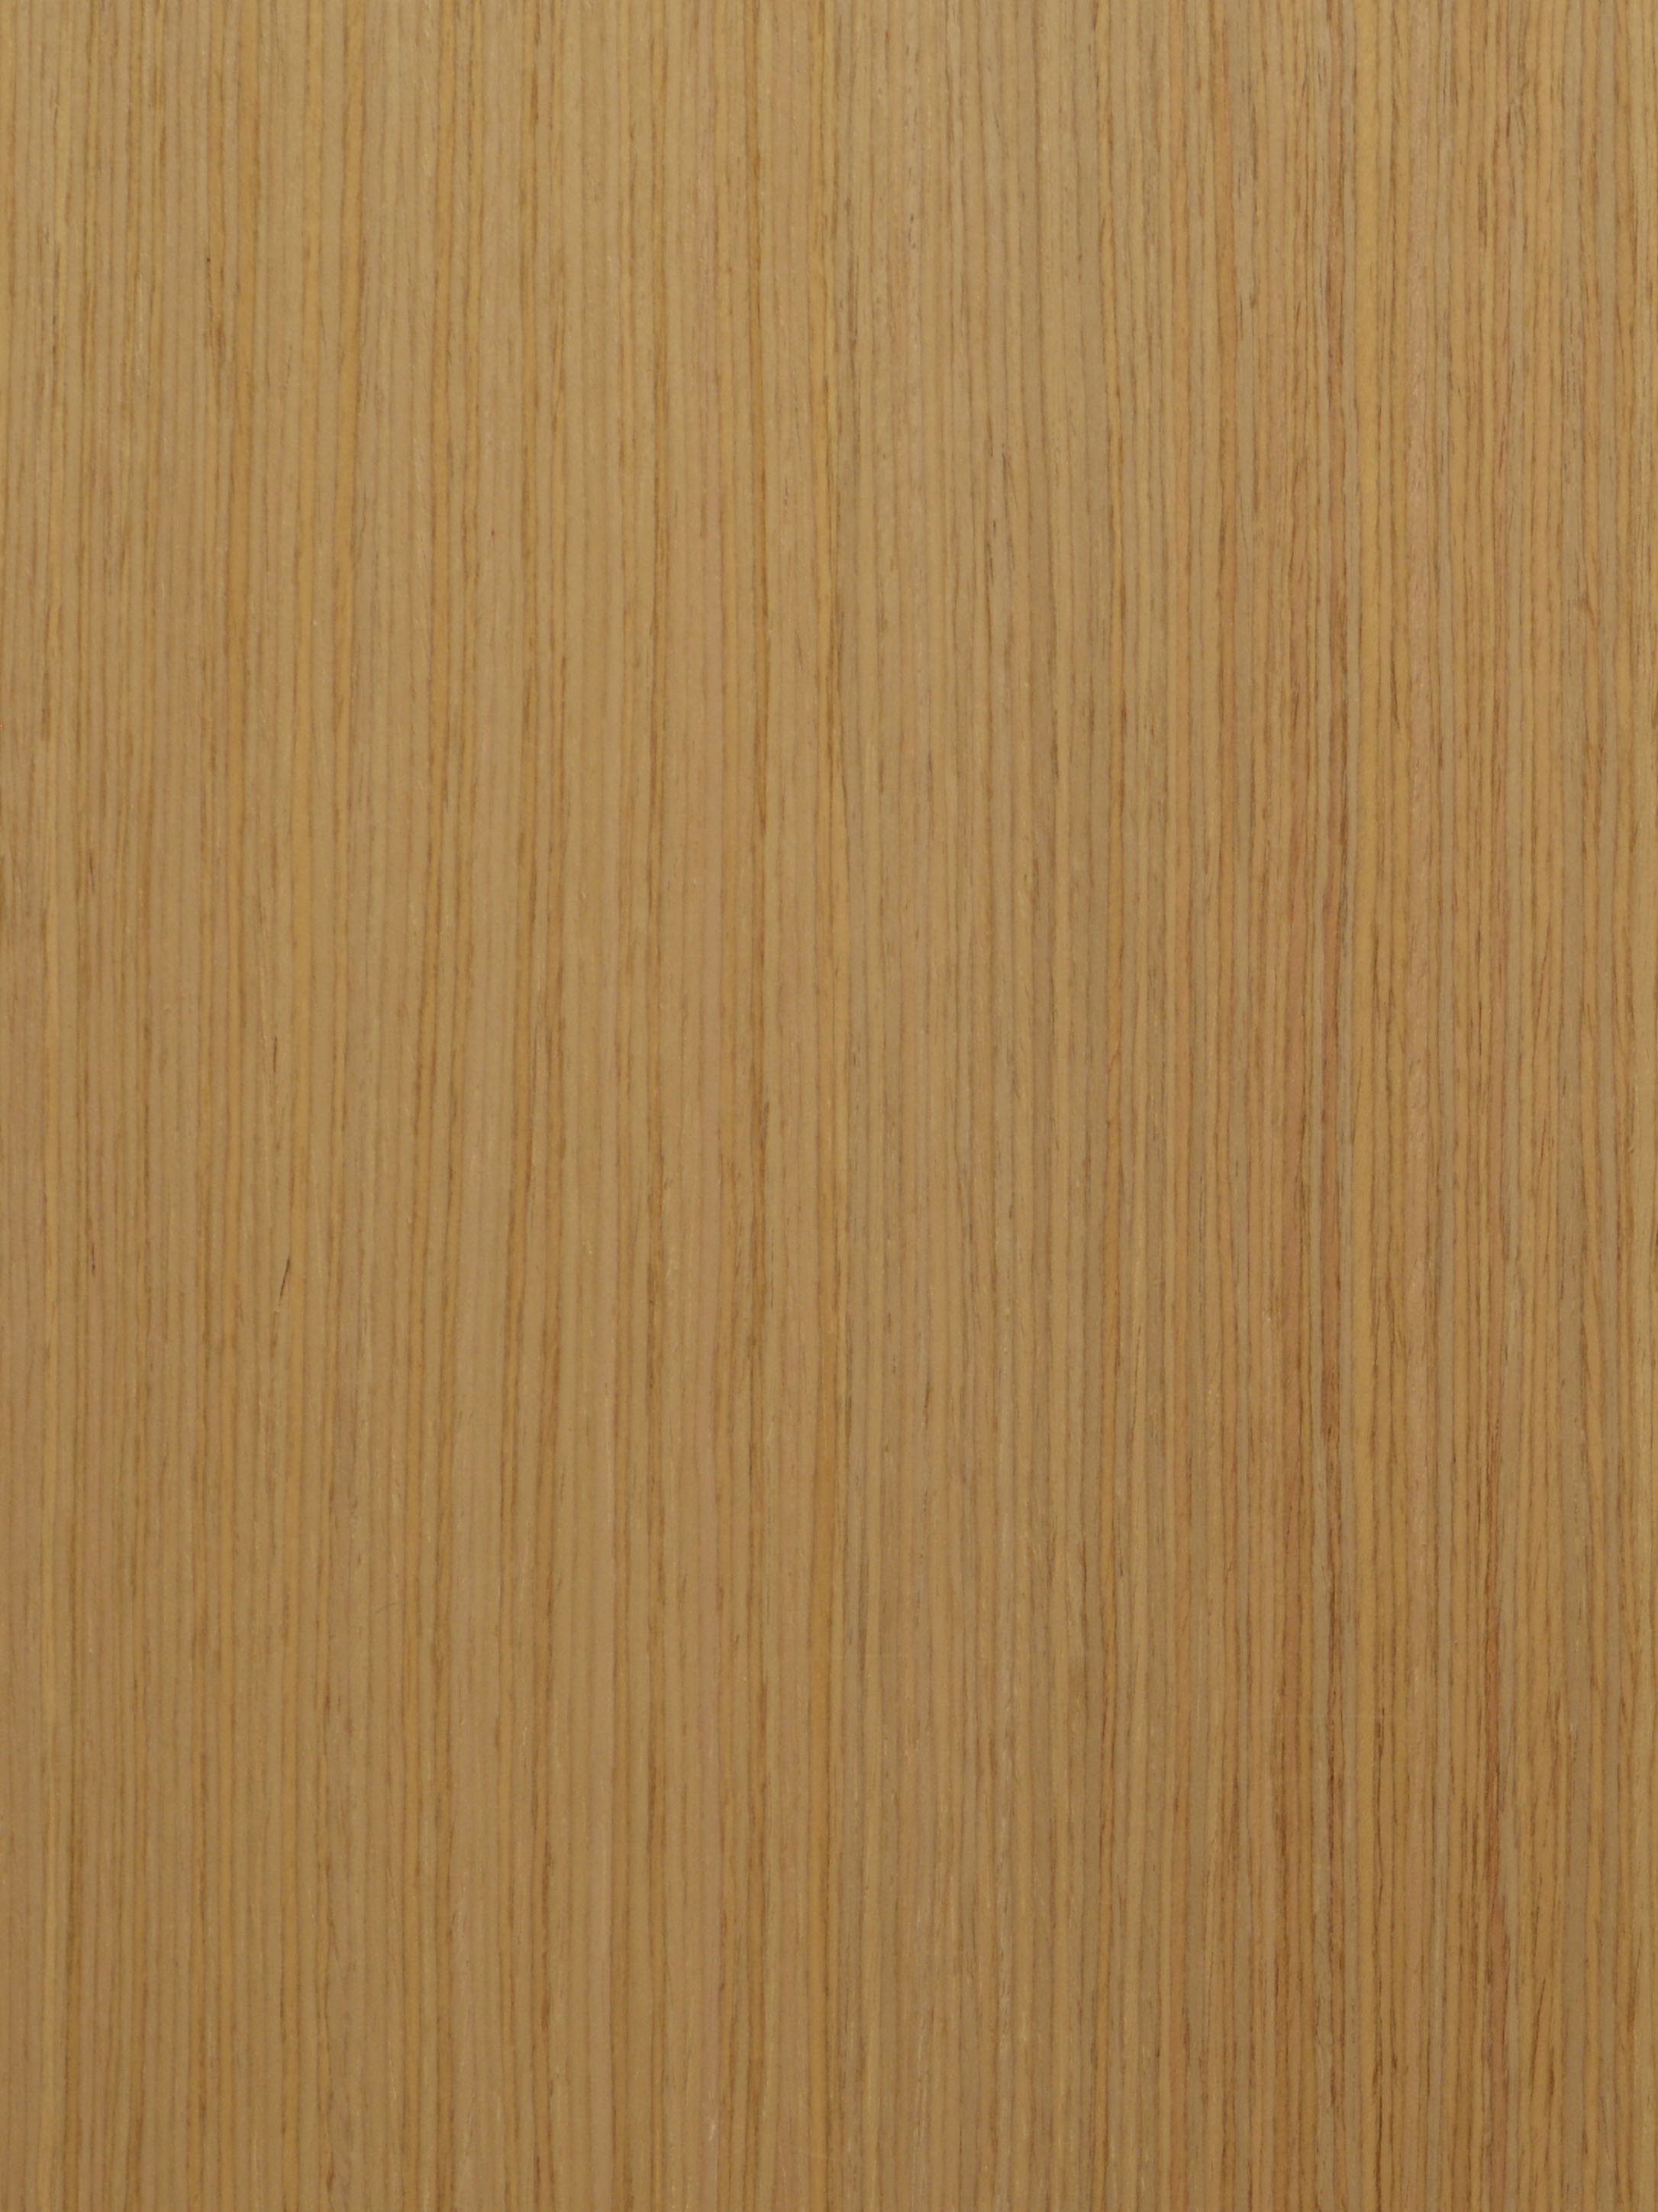 Wood Veneer Cabinet Doors Allstyle Cabinet Doors Recon Veneer Black Oak Kitchen Cabinet Door